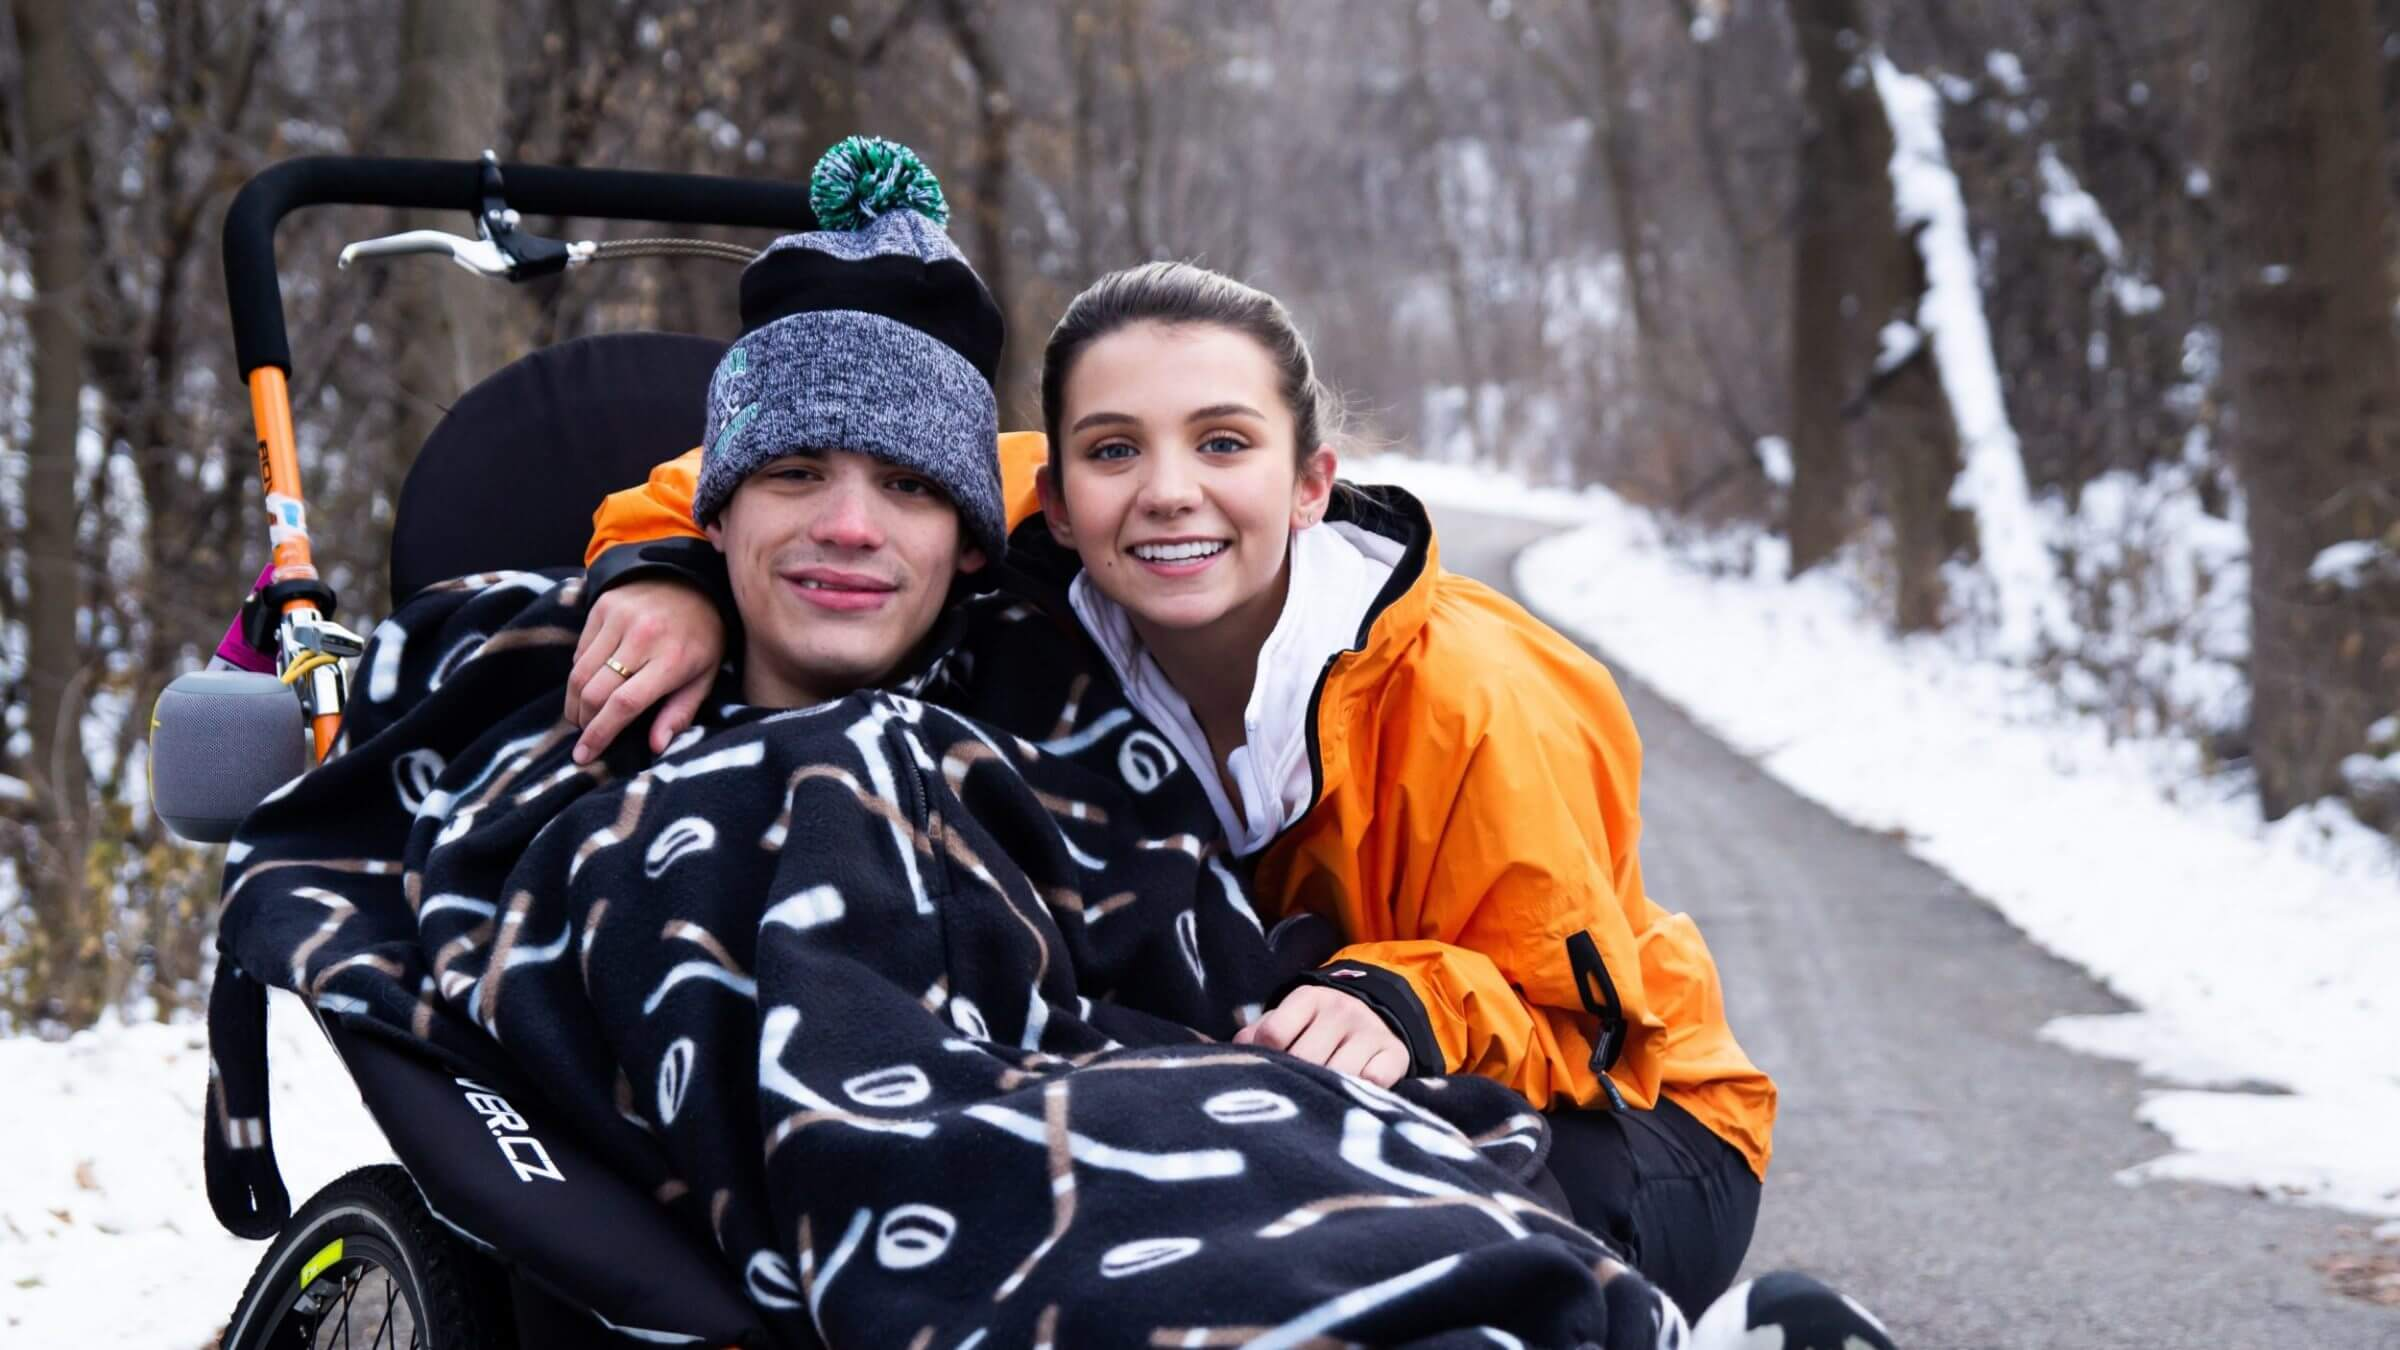 Patrick, who is in a wheelchair, and his sister Megan posing while on a run.